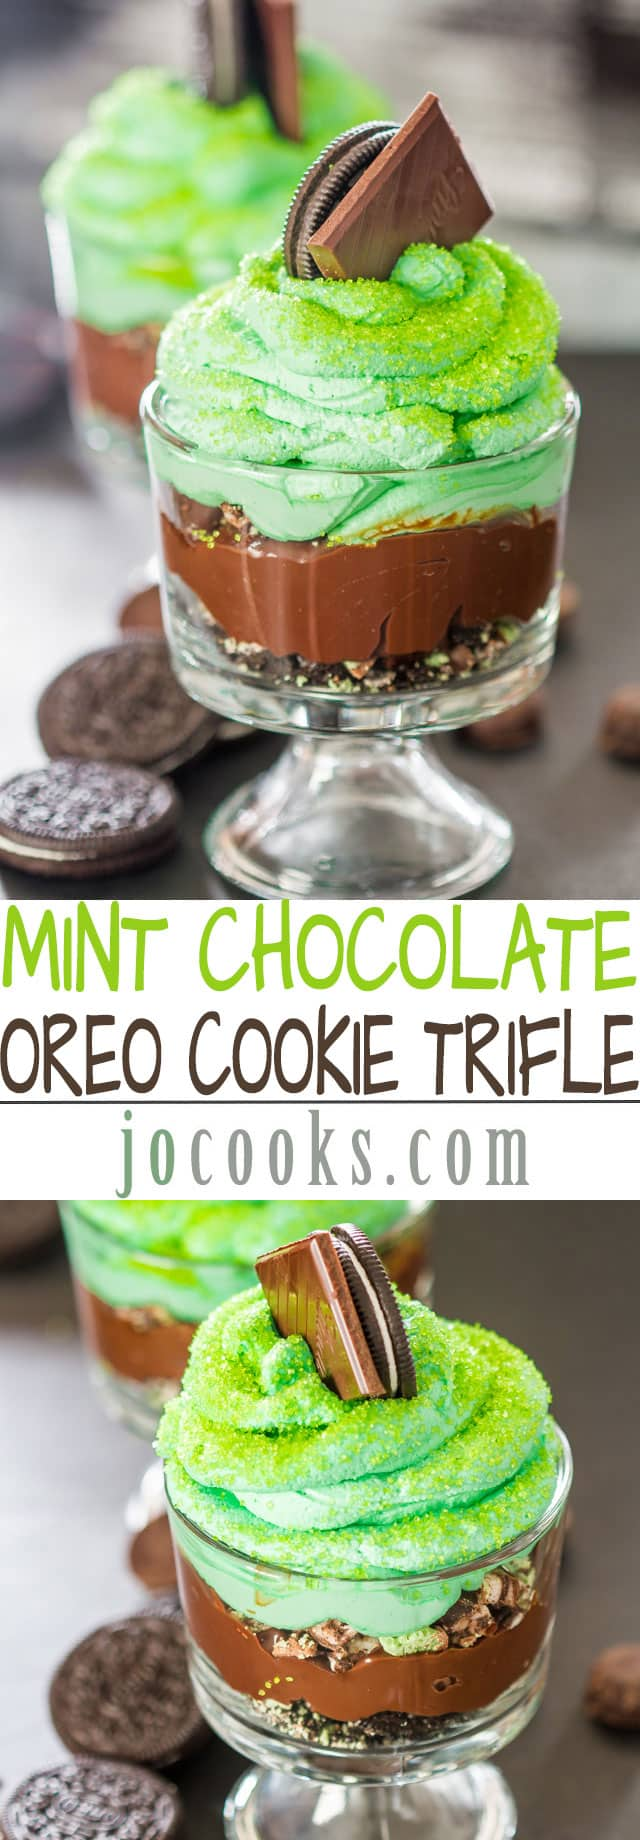 Mint Chocolate Oreo Cookie Trifle - delicious little sinful trifles perfect for St. Patrick's Day, loaded with mint chocolate and chocolate fudge pudding.